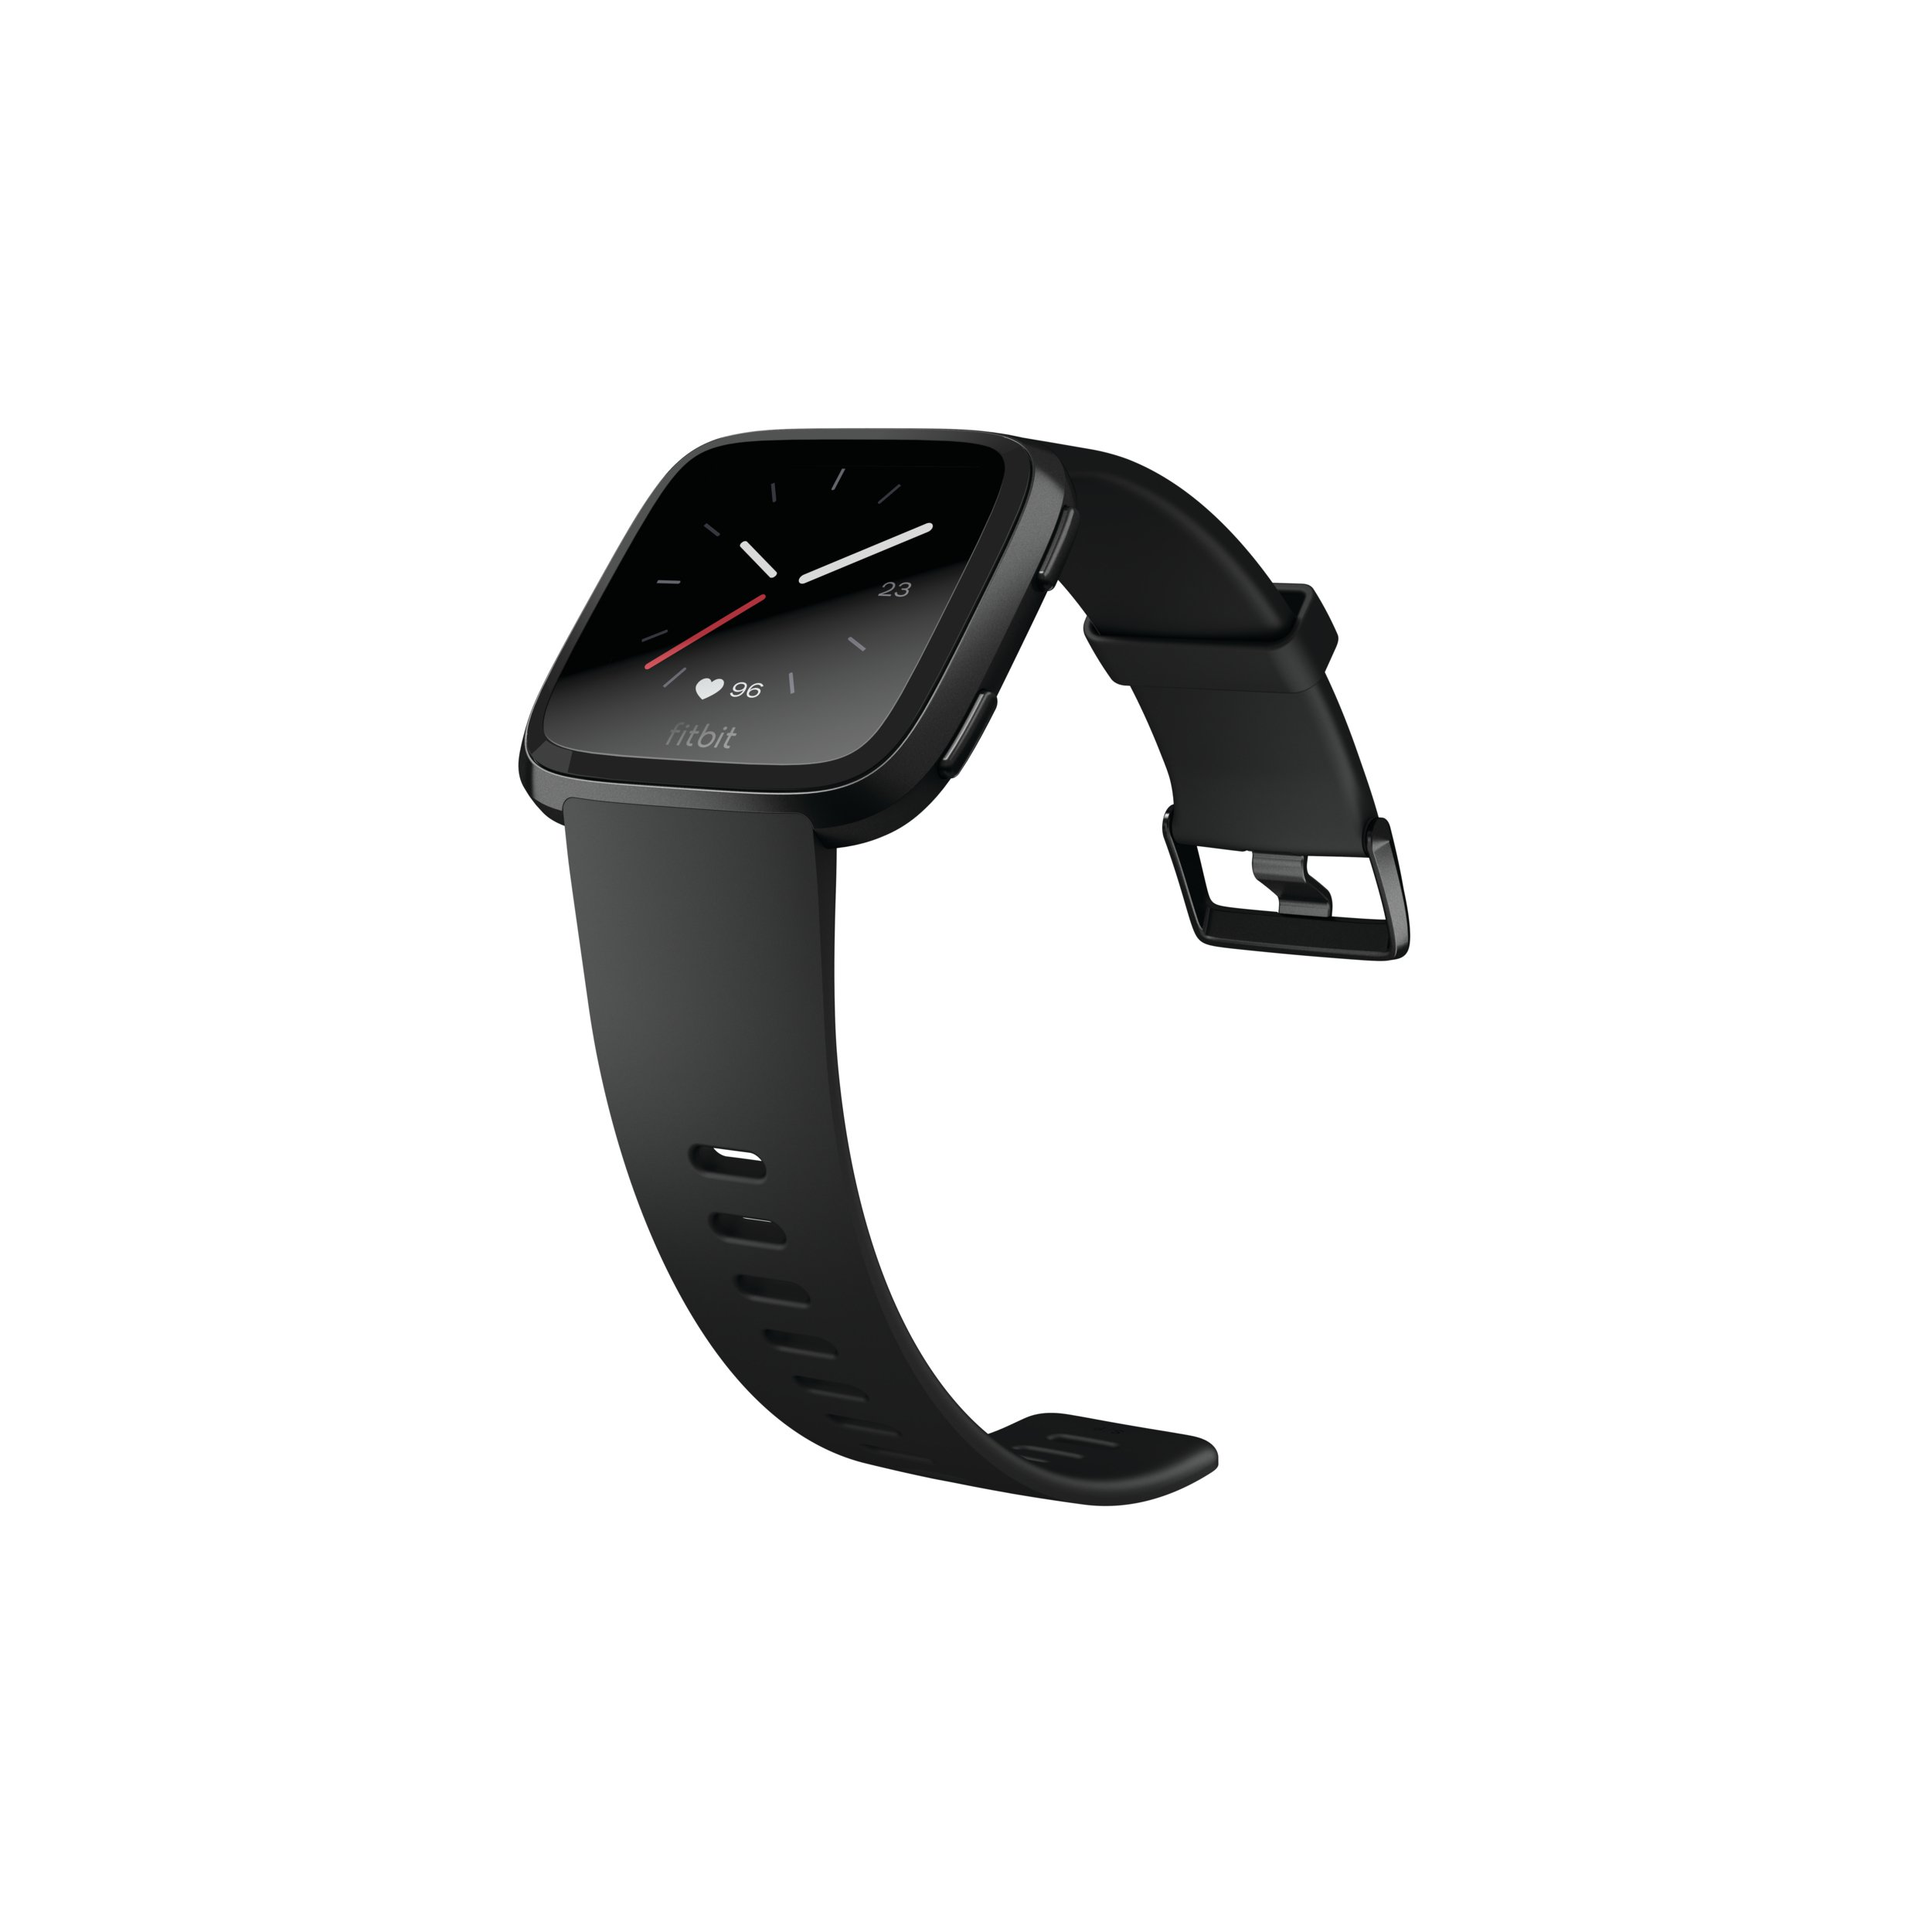 Fitbit Versa Smartwatch, Black/Black Aluminium, One Size (S & L Bands Included) by Fitbit (Image #4)